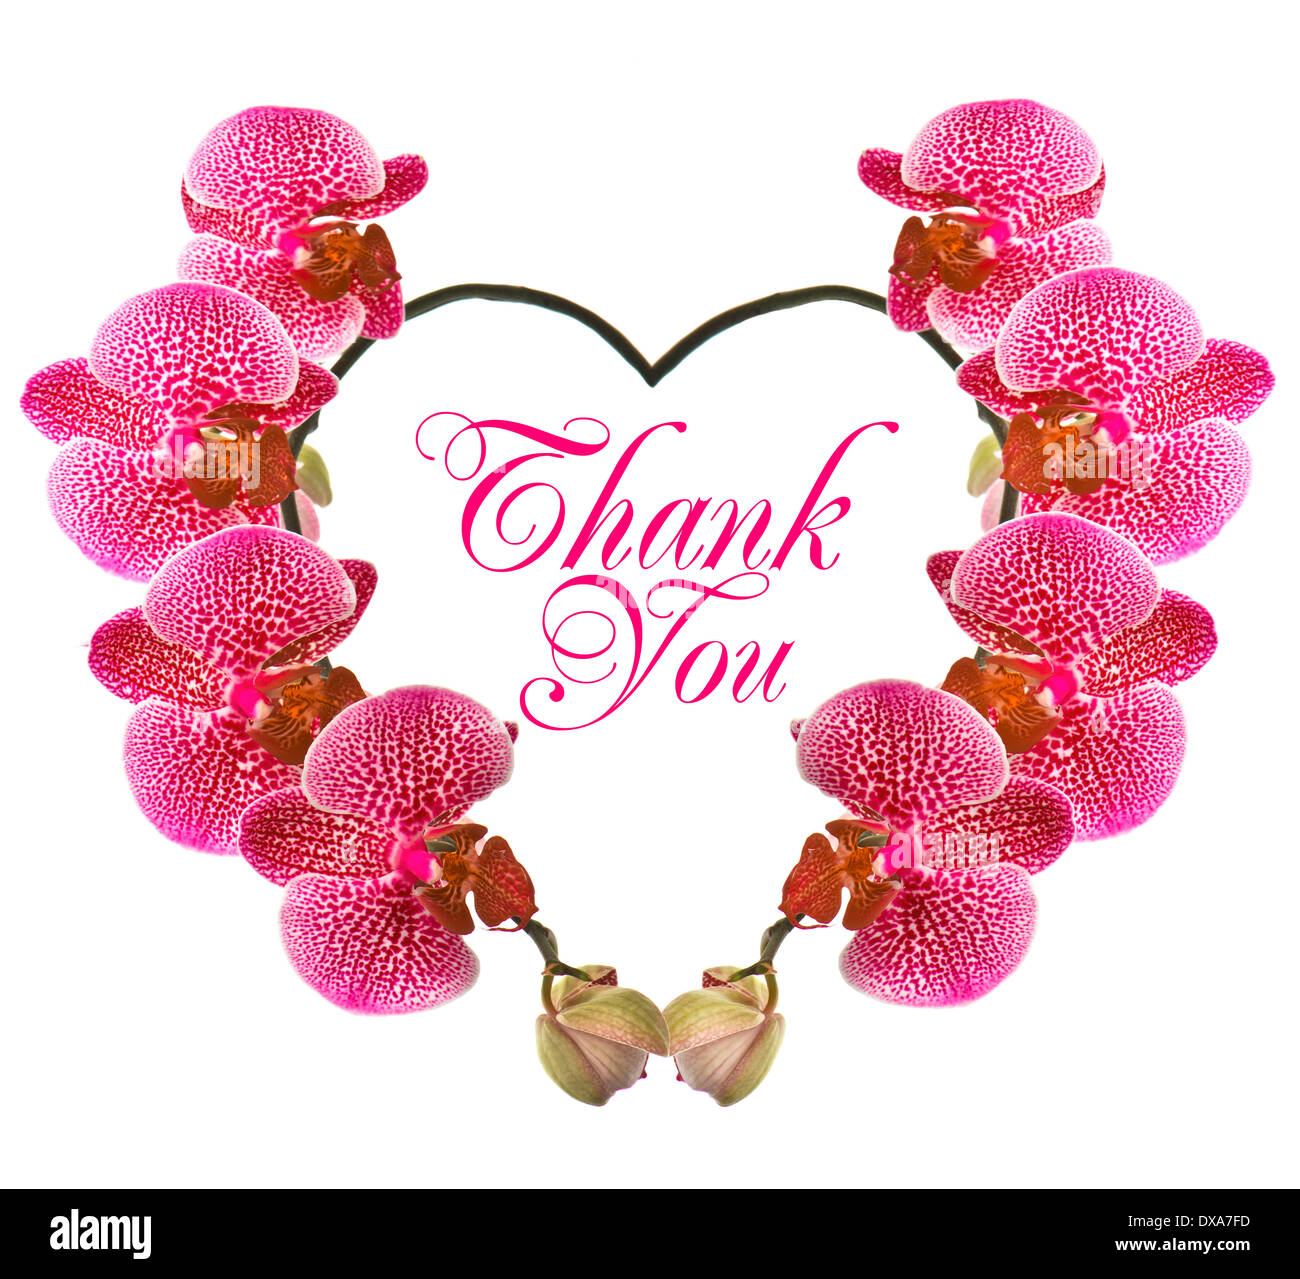 Beautiful Flower Thank You: Beautiful Orchid Flower In Heart Shape On White Background